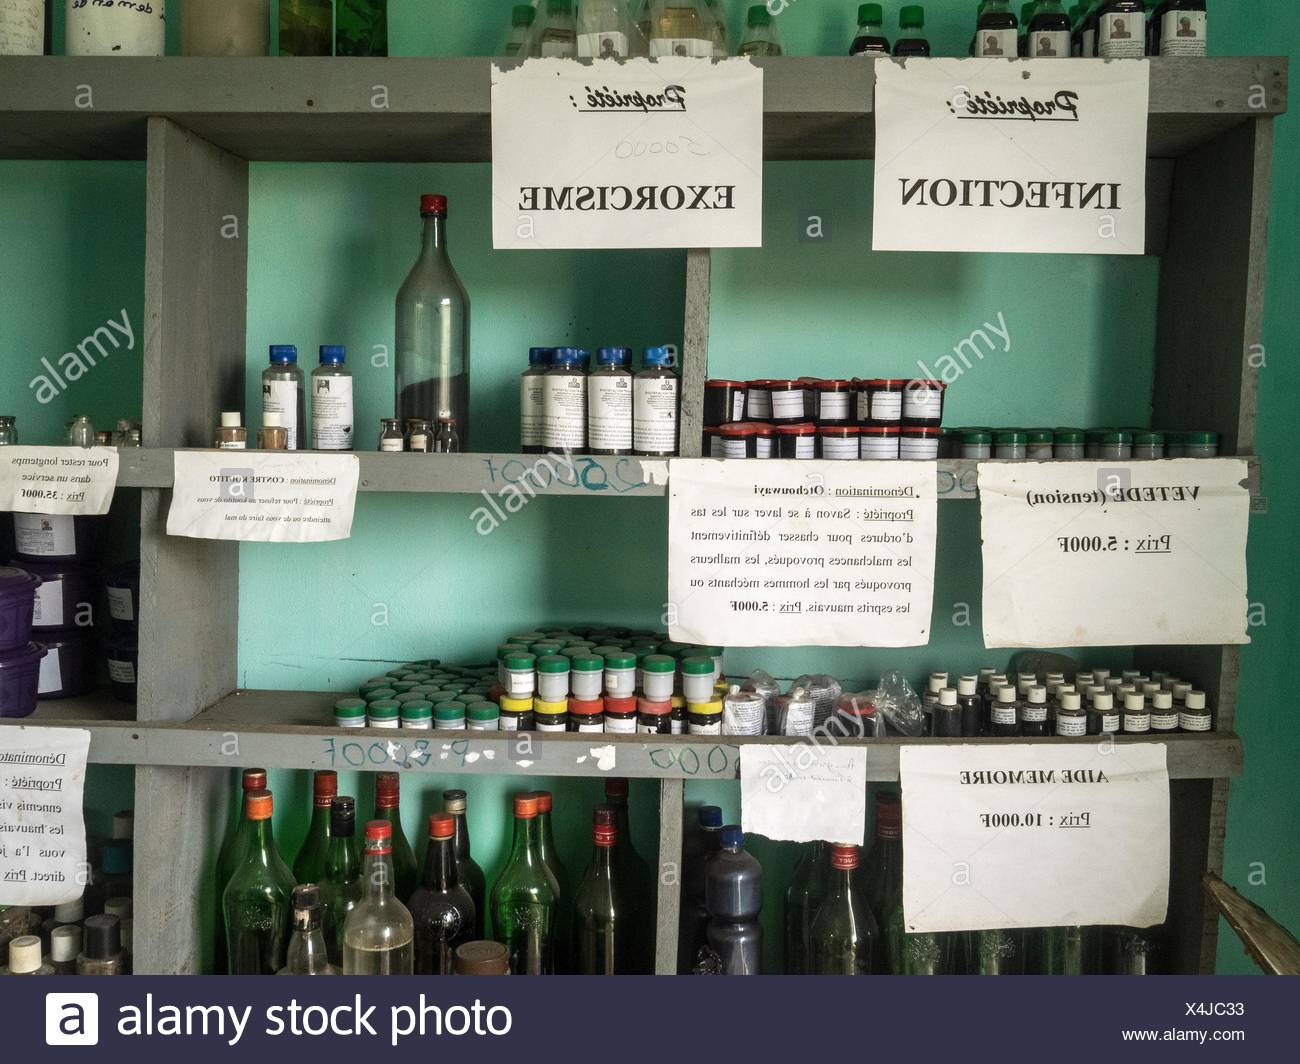 An assortment of traditional medicines prescribed for a variety of ailments, such as stress, infection, as memory aids and for exorcism. - Stock Image